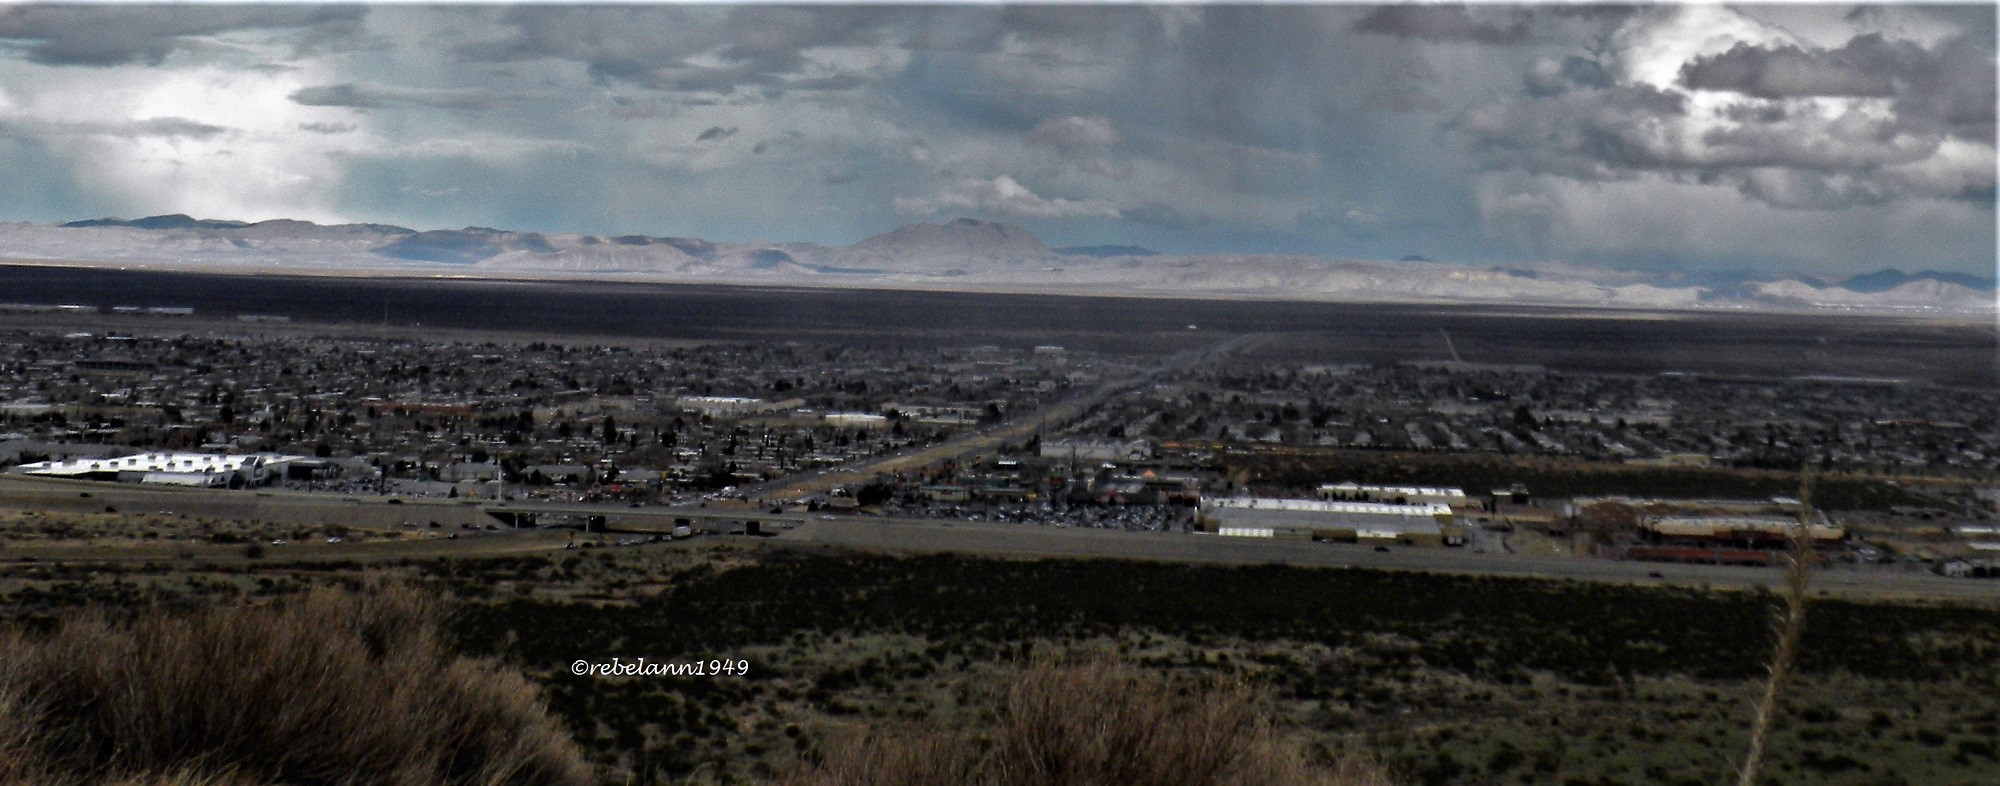 A view of northeast El Paso and the Guadalupes with rain falling, do you see it? I took this shot in Feb 2010